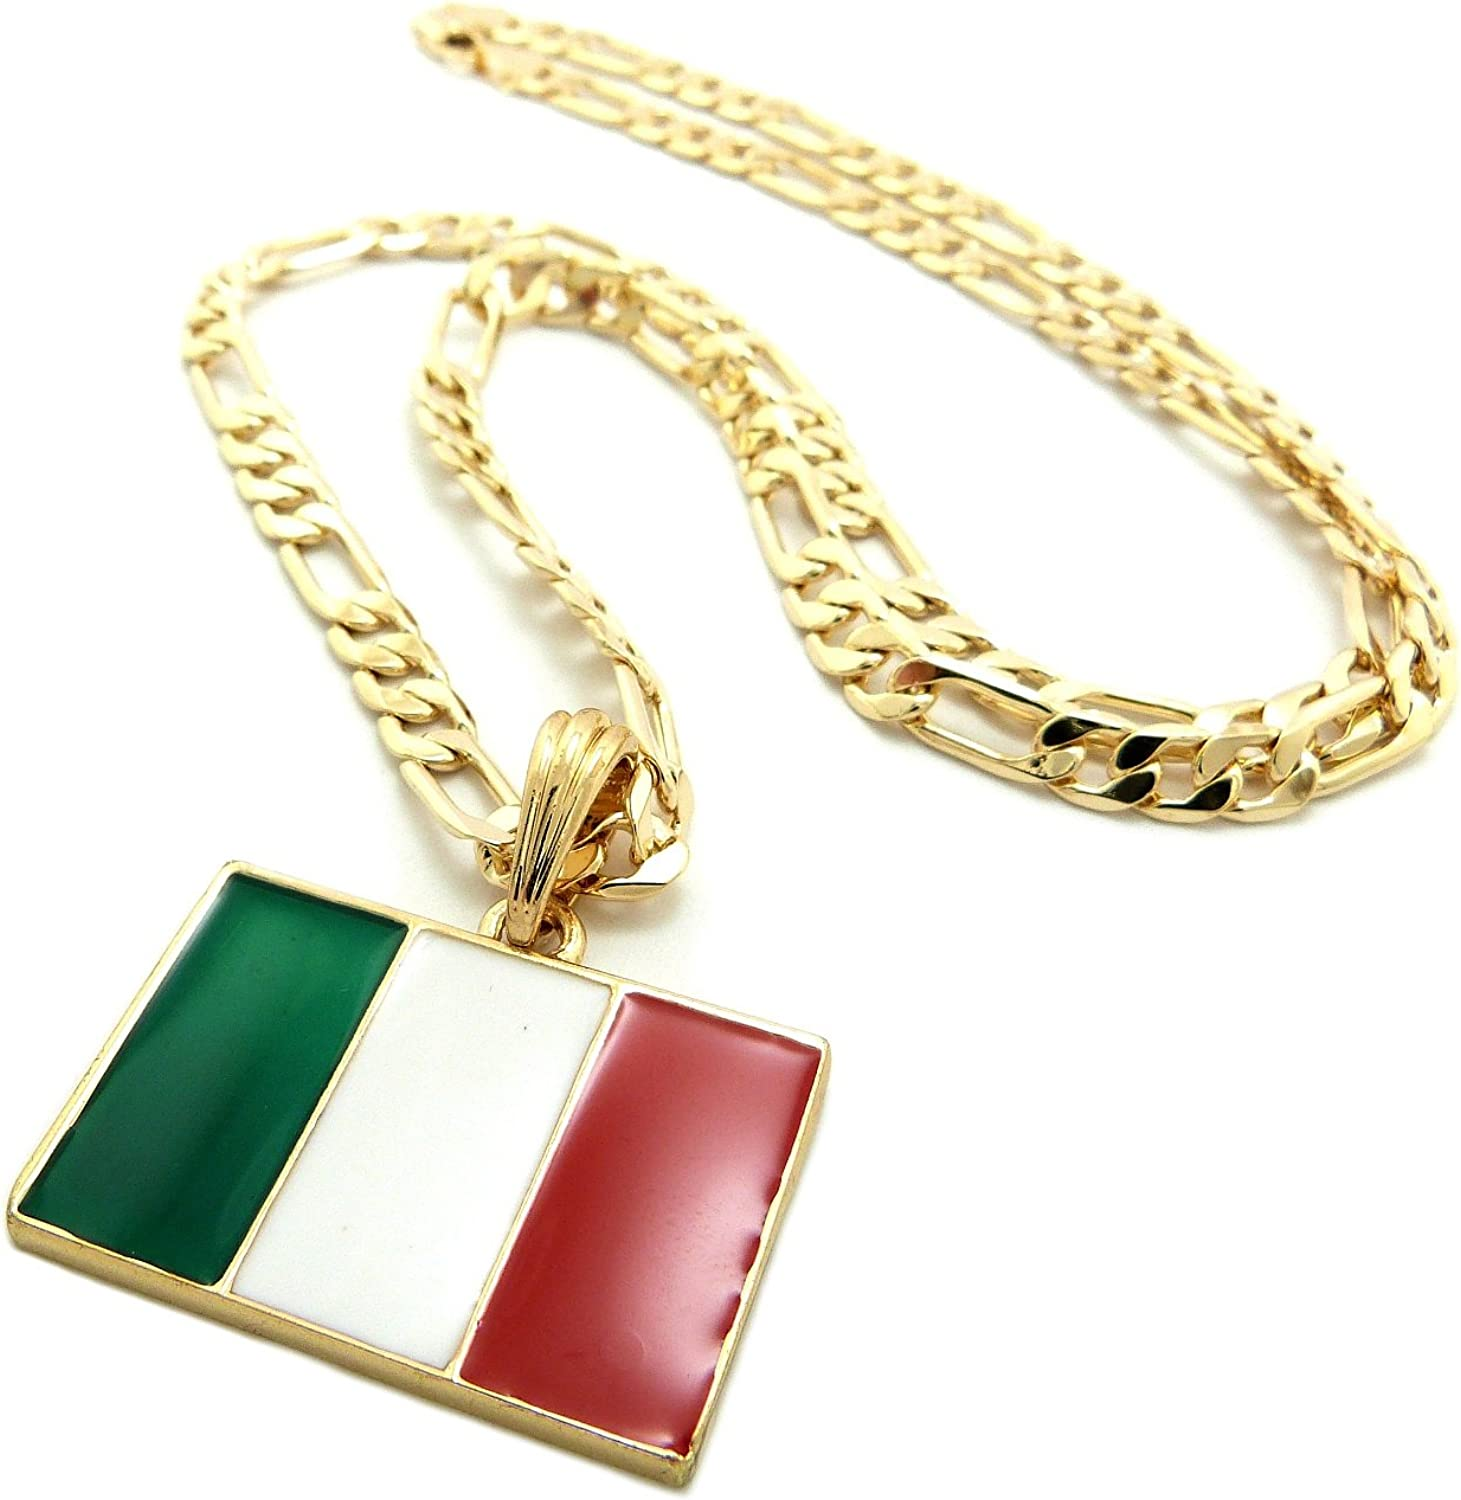 New ITALY FLAG Pendant 5mm//24 Figaro Chain Hip Hop Necklace XSP363G